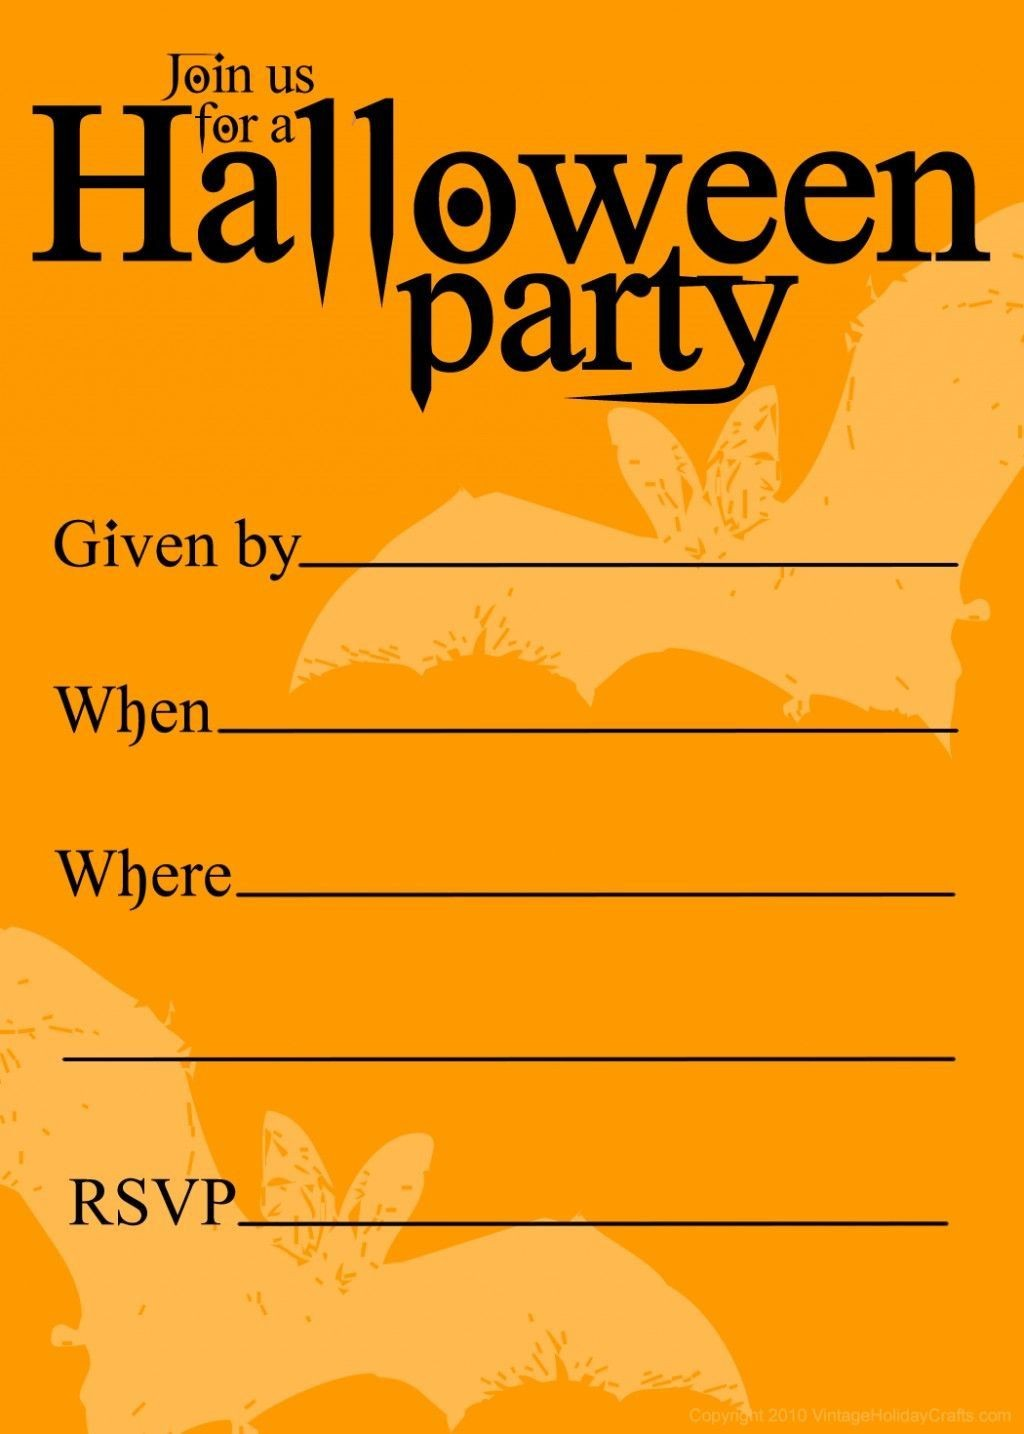 001 Incredible Halloween Party Invite Template Inspiration  Spooky Invitation Free Printable Birthday DownloadLarge